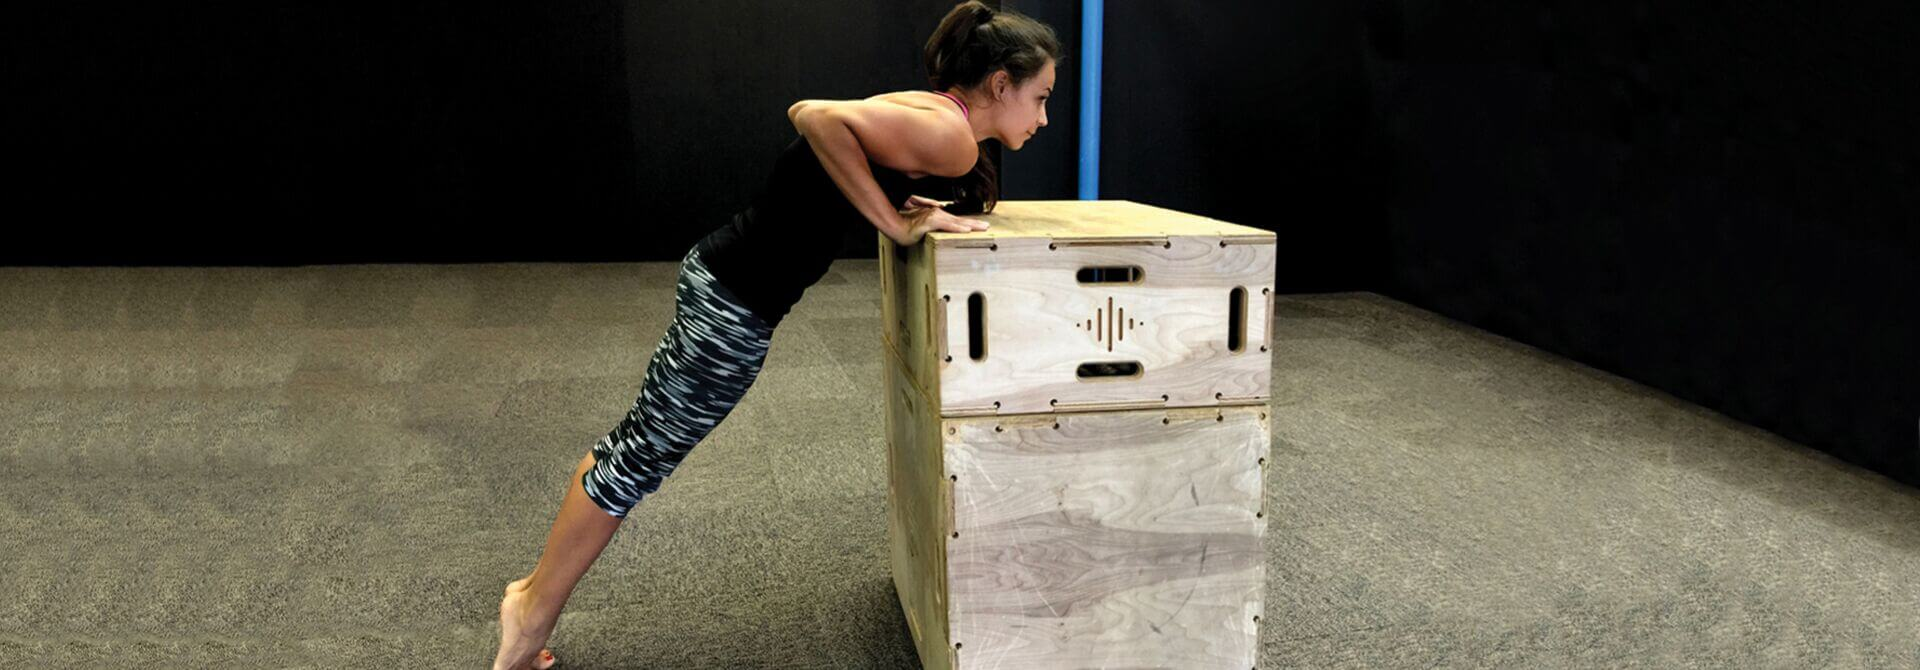 GymnasticBodies athlete demonstrates an incline pushup from the GB Foundation Series.